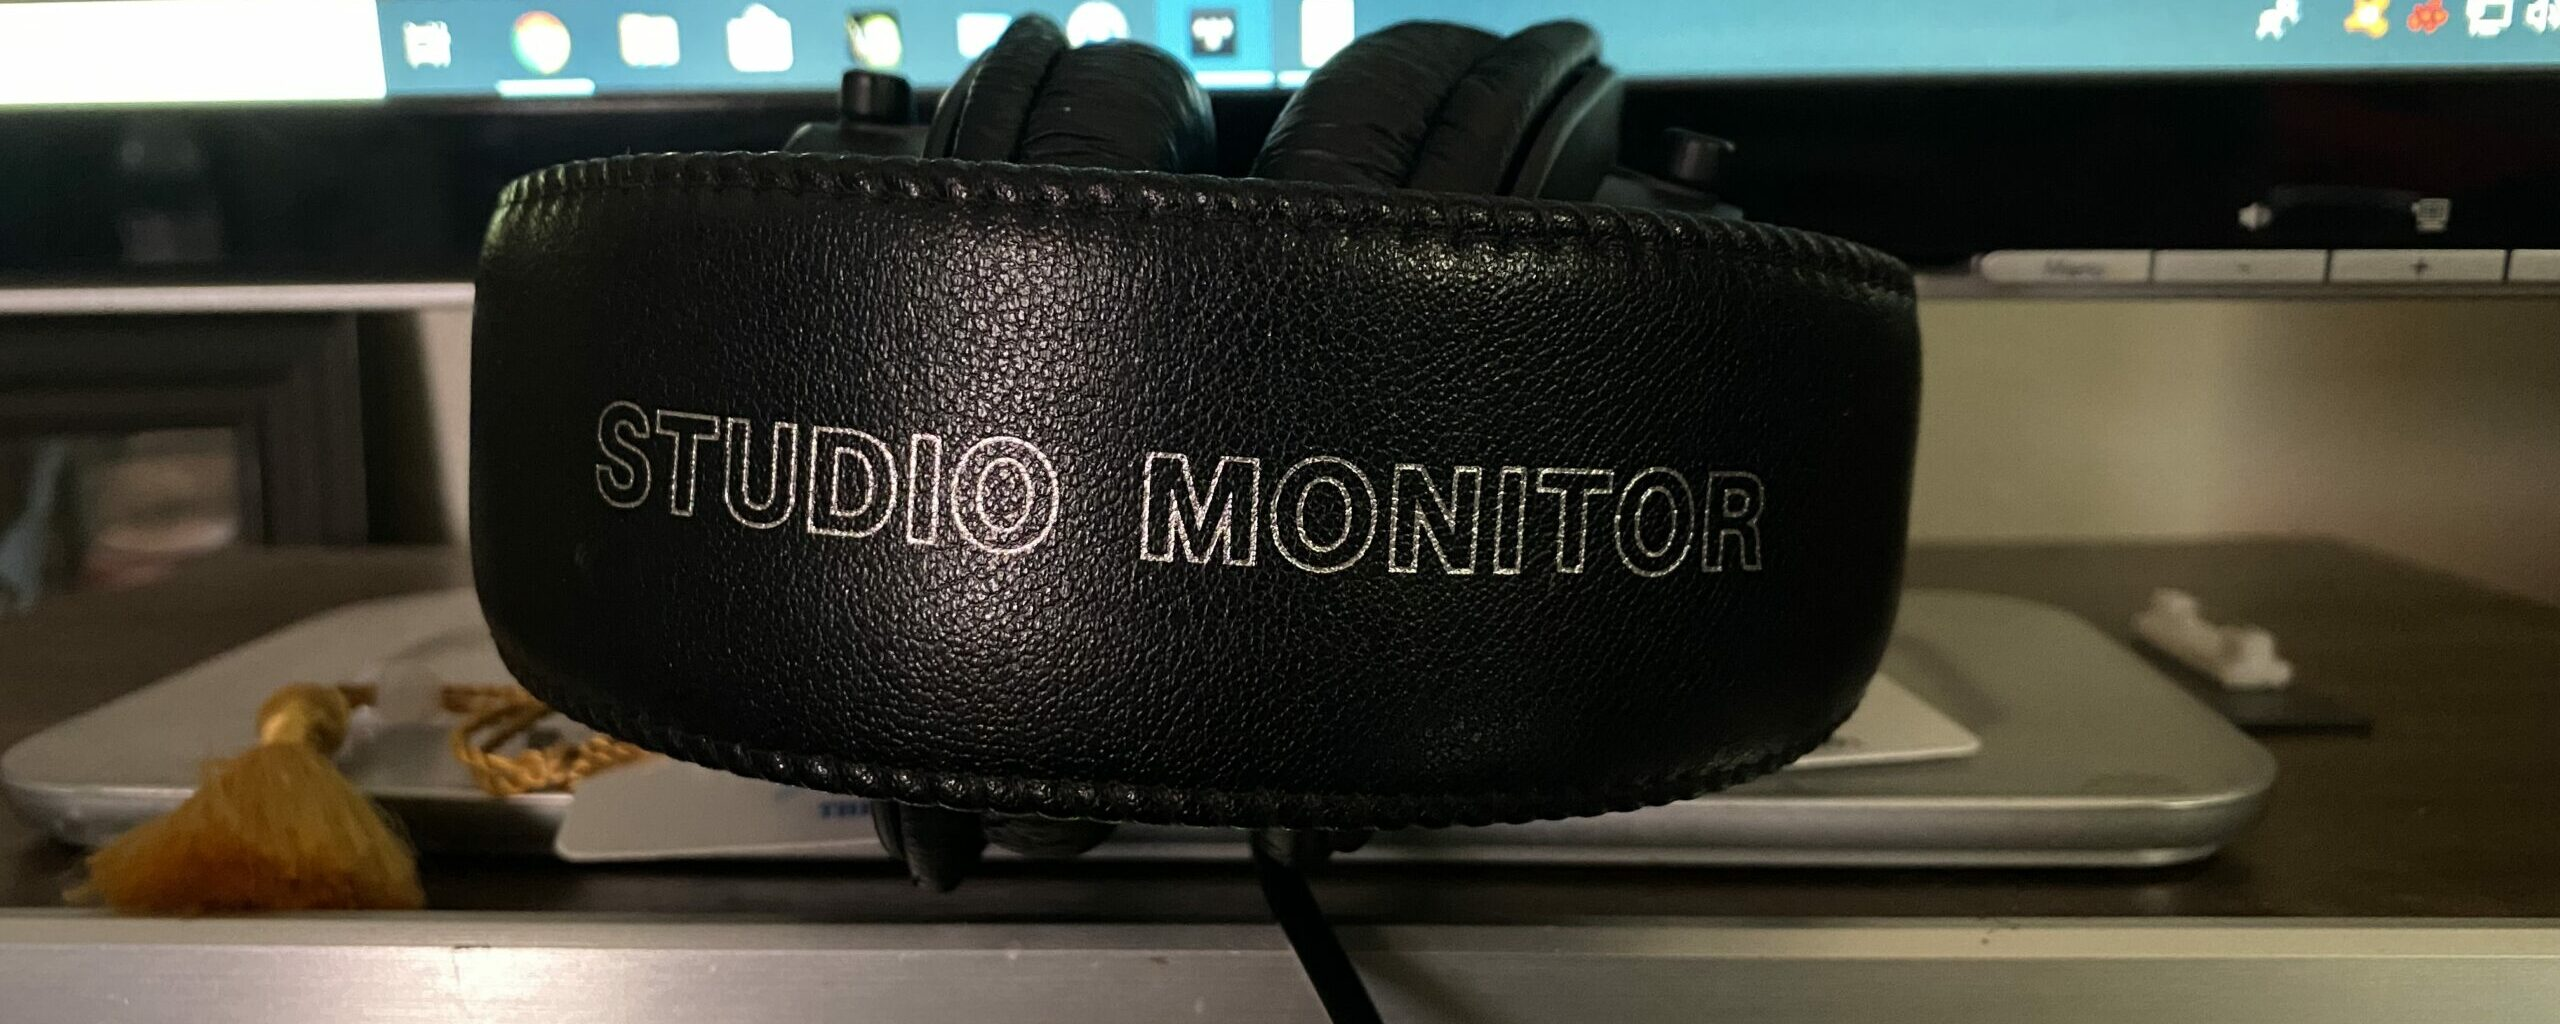 "The headband that is labeled 'Studio Monitor""."